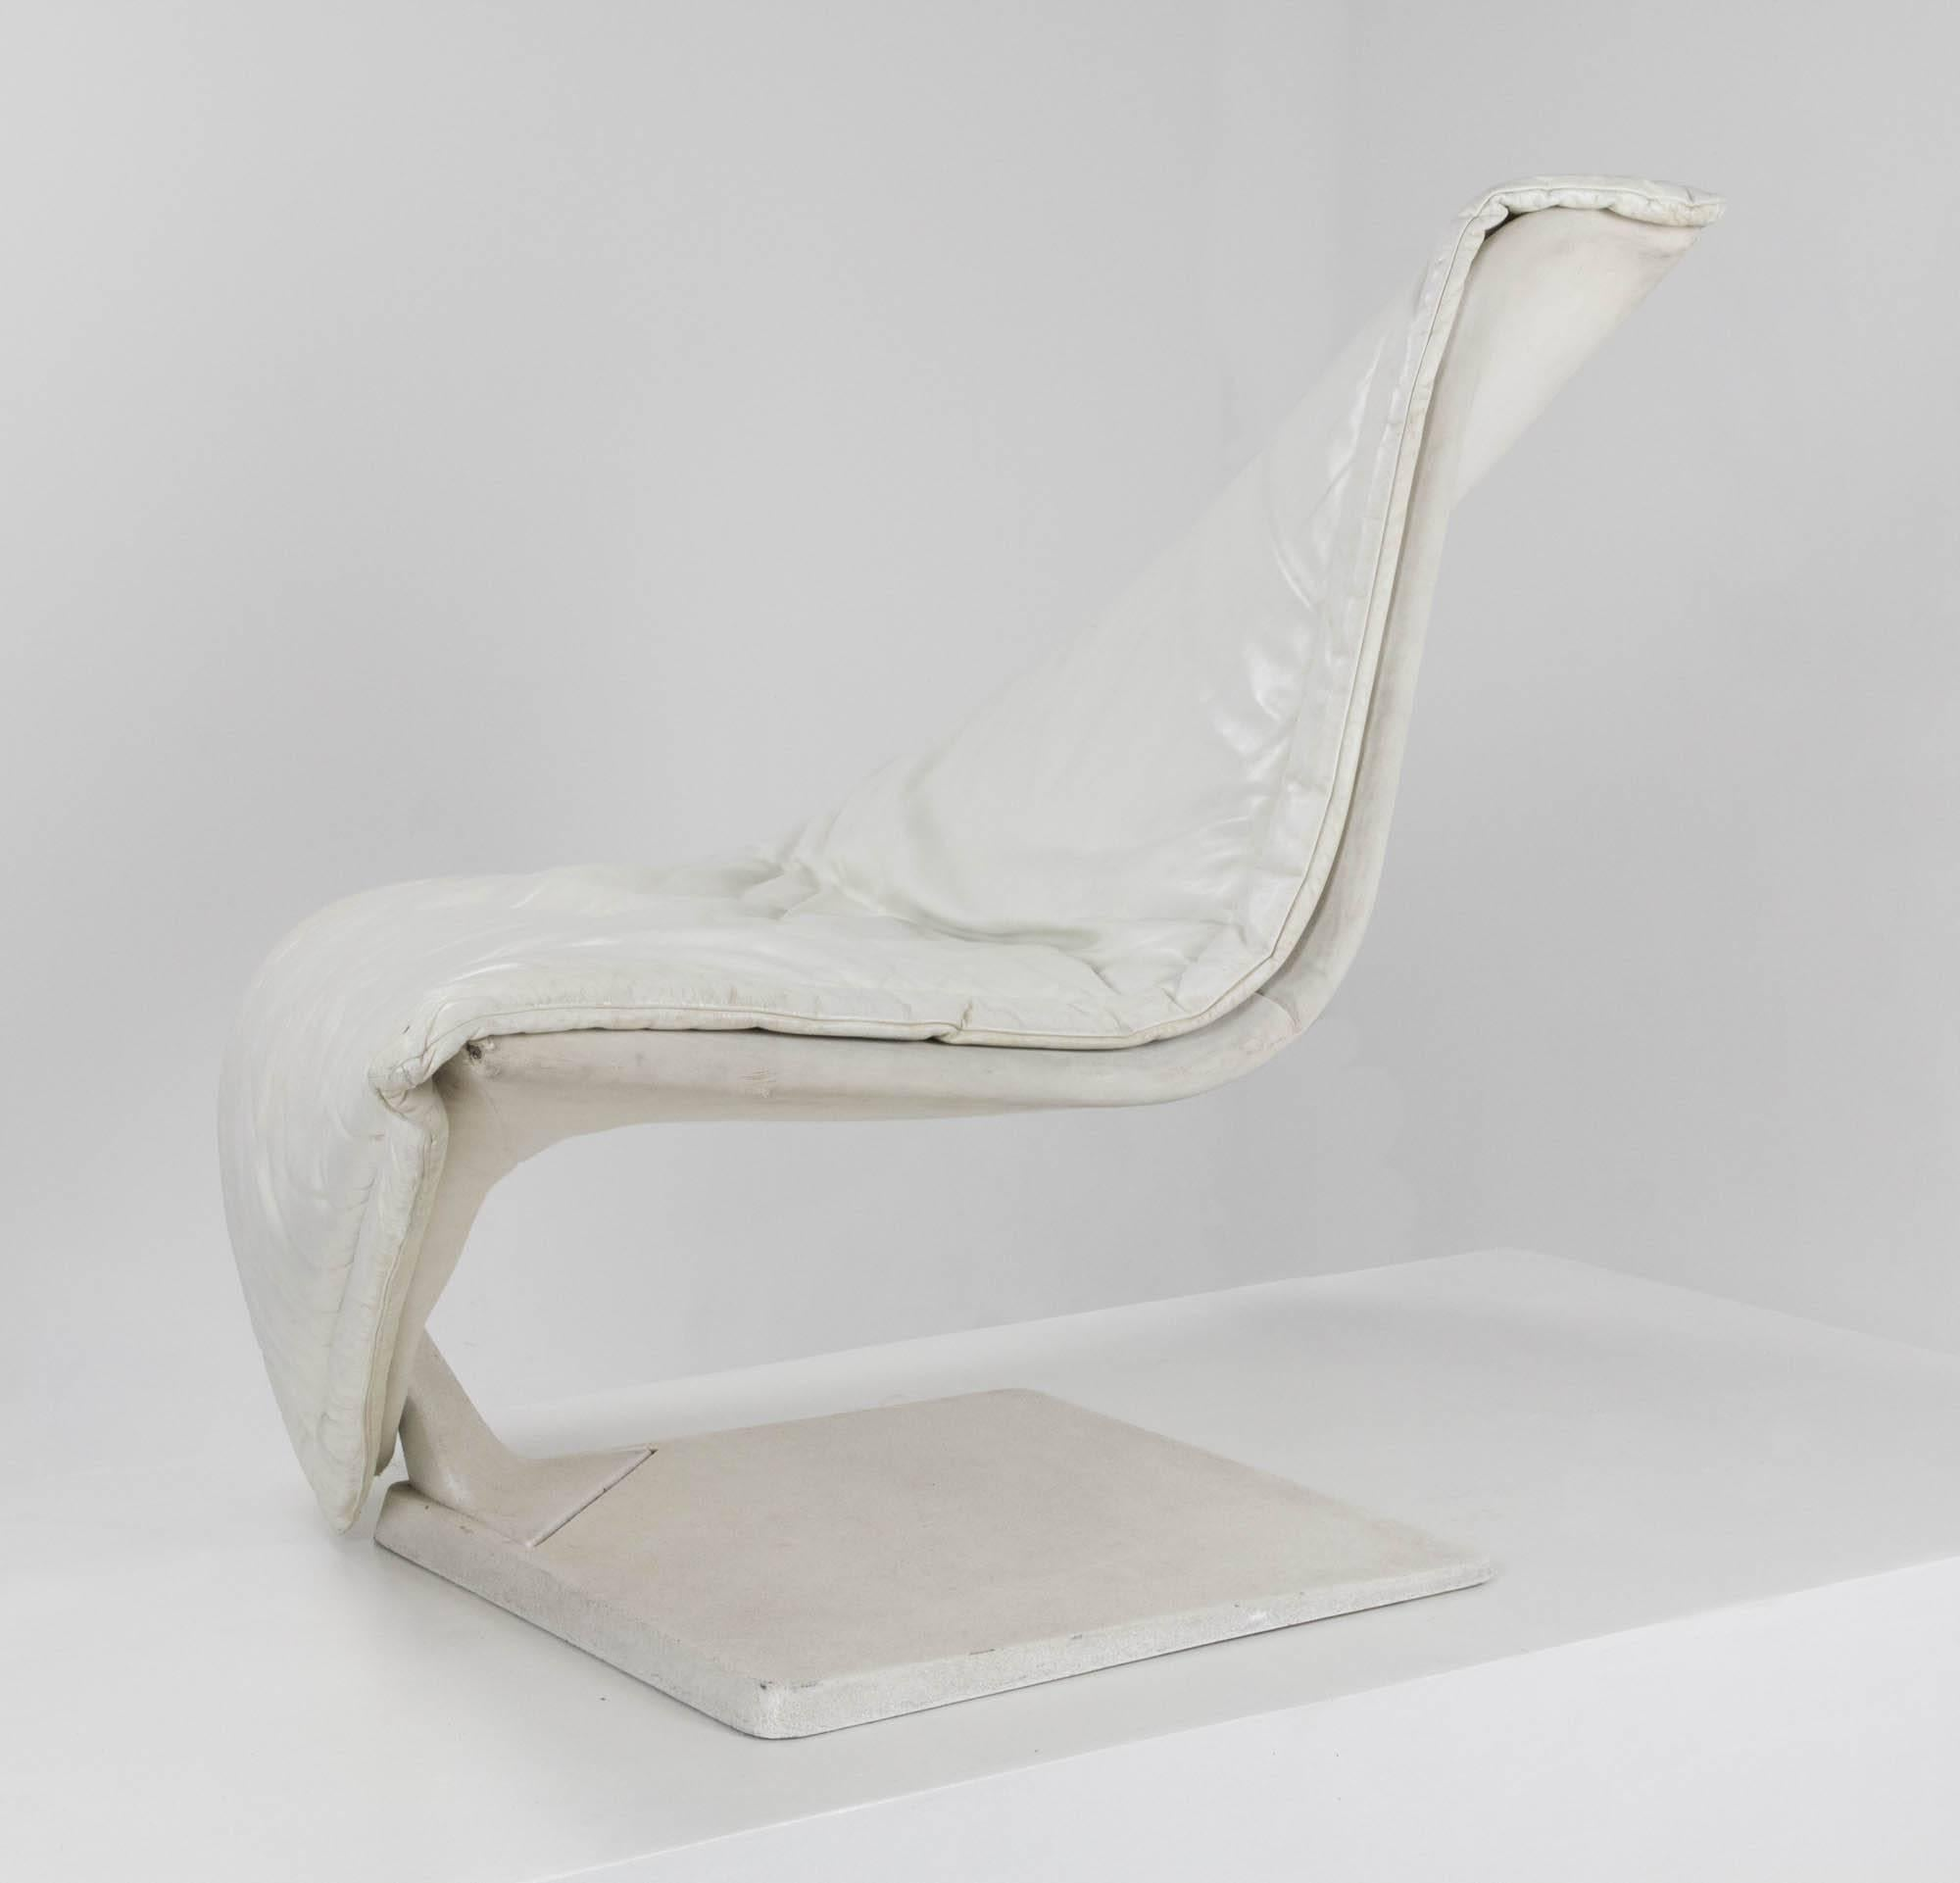 Flying Carpet Lounge Chair By Simon Desanta For Rosenthal Einrichtung With  White Leather Upholstery Formed Around